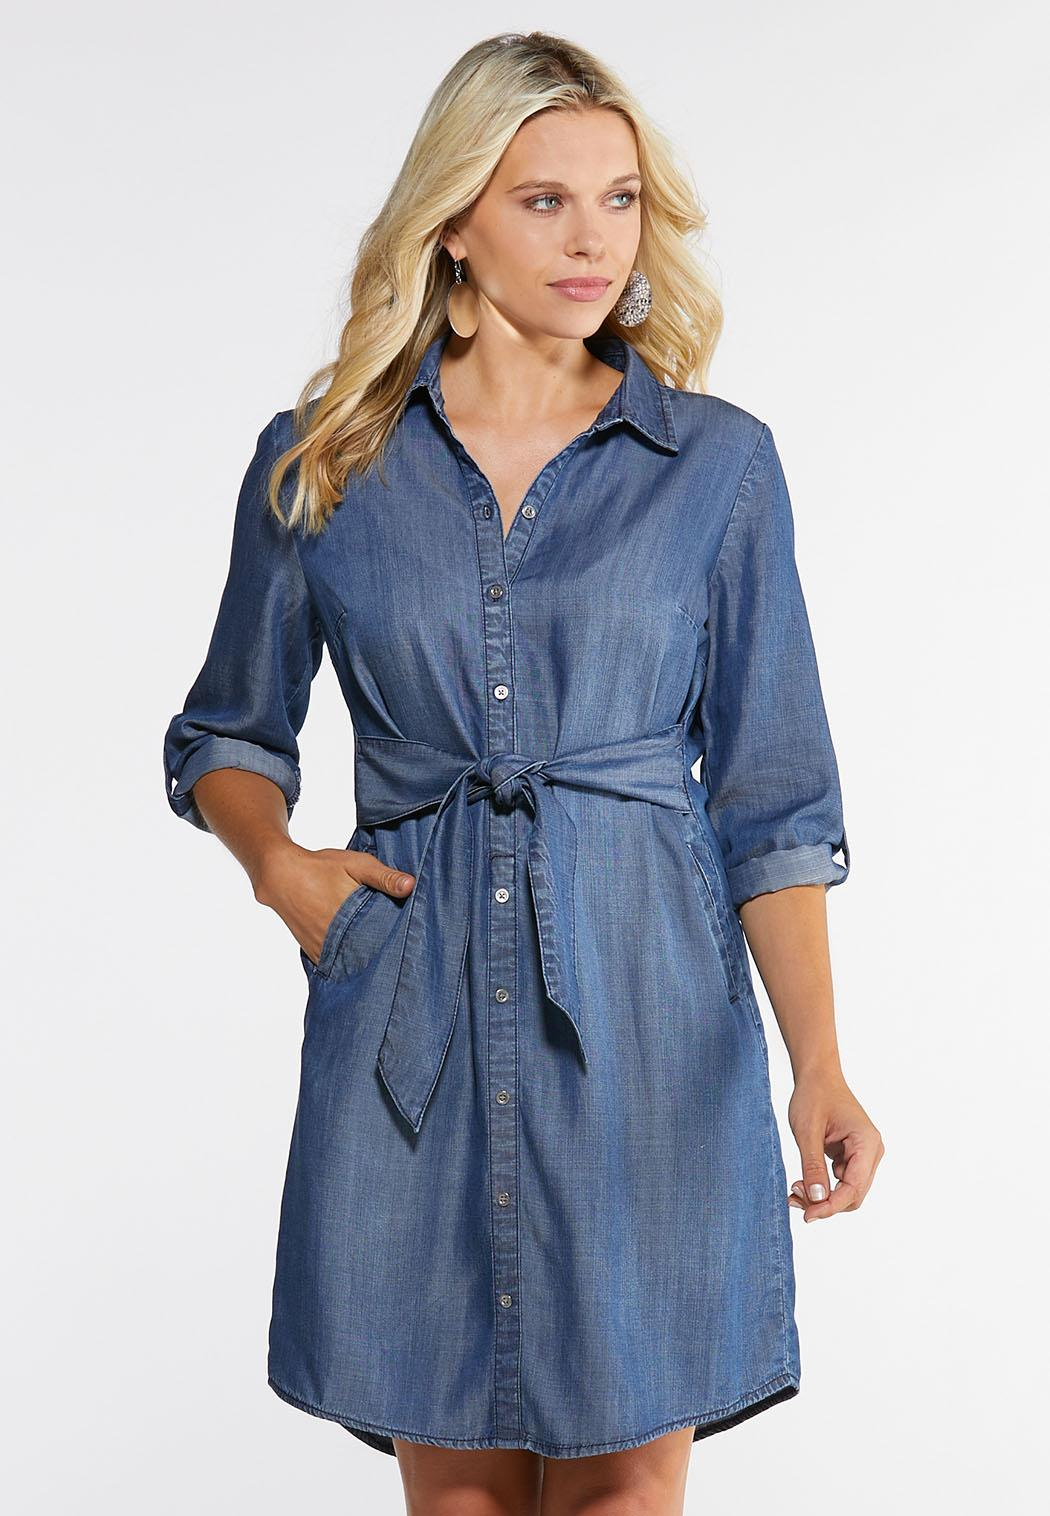 Plus Size Chambray Shirt Dress Plus Sizes Cato Fashions